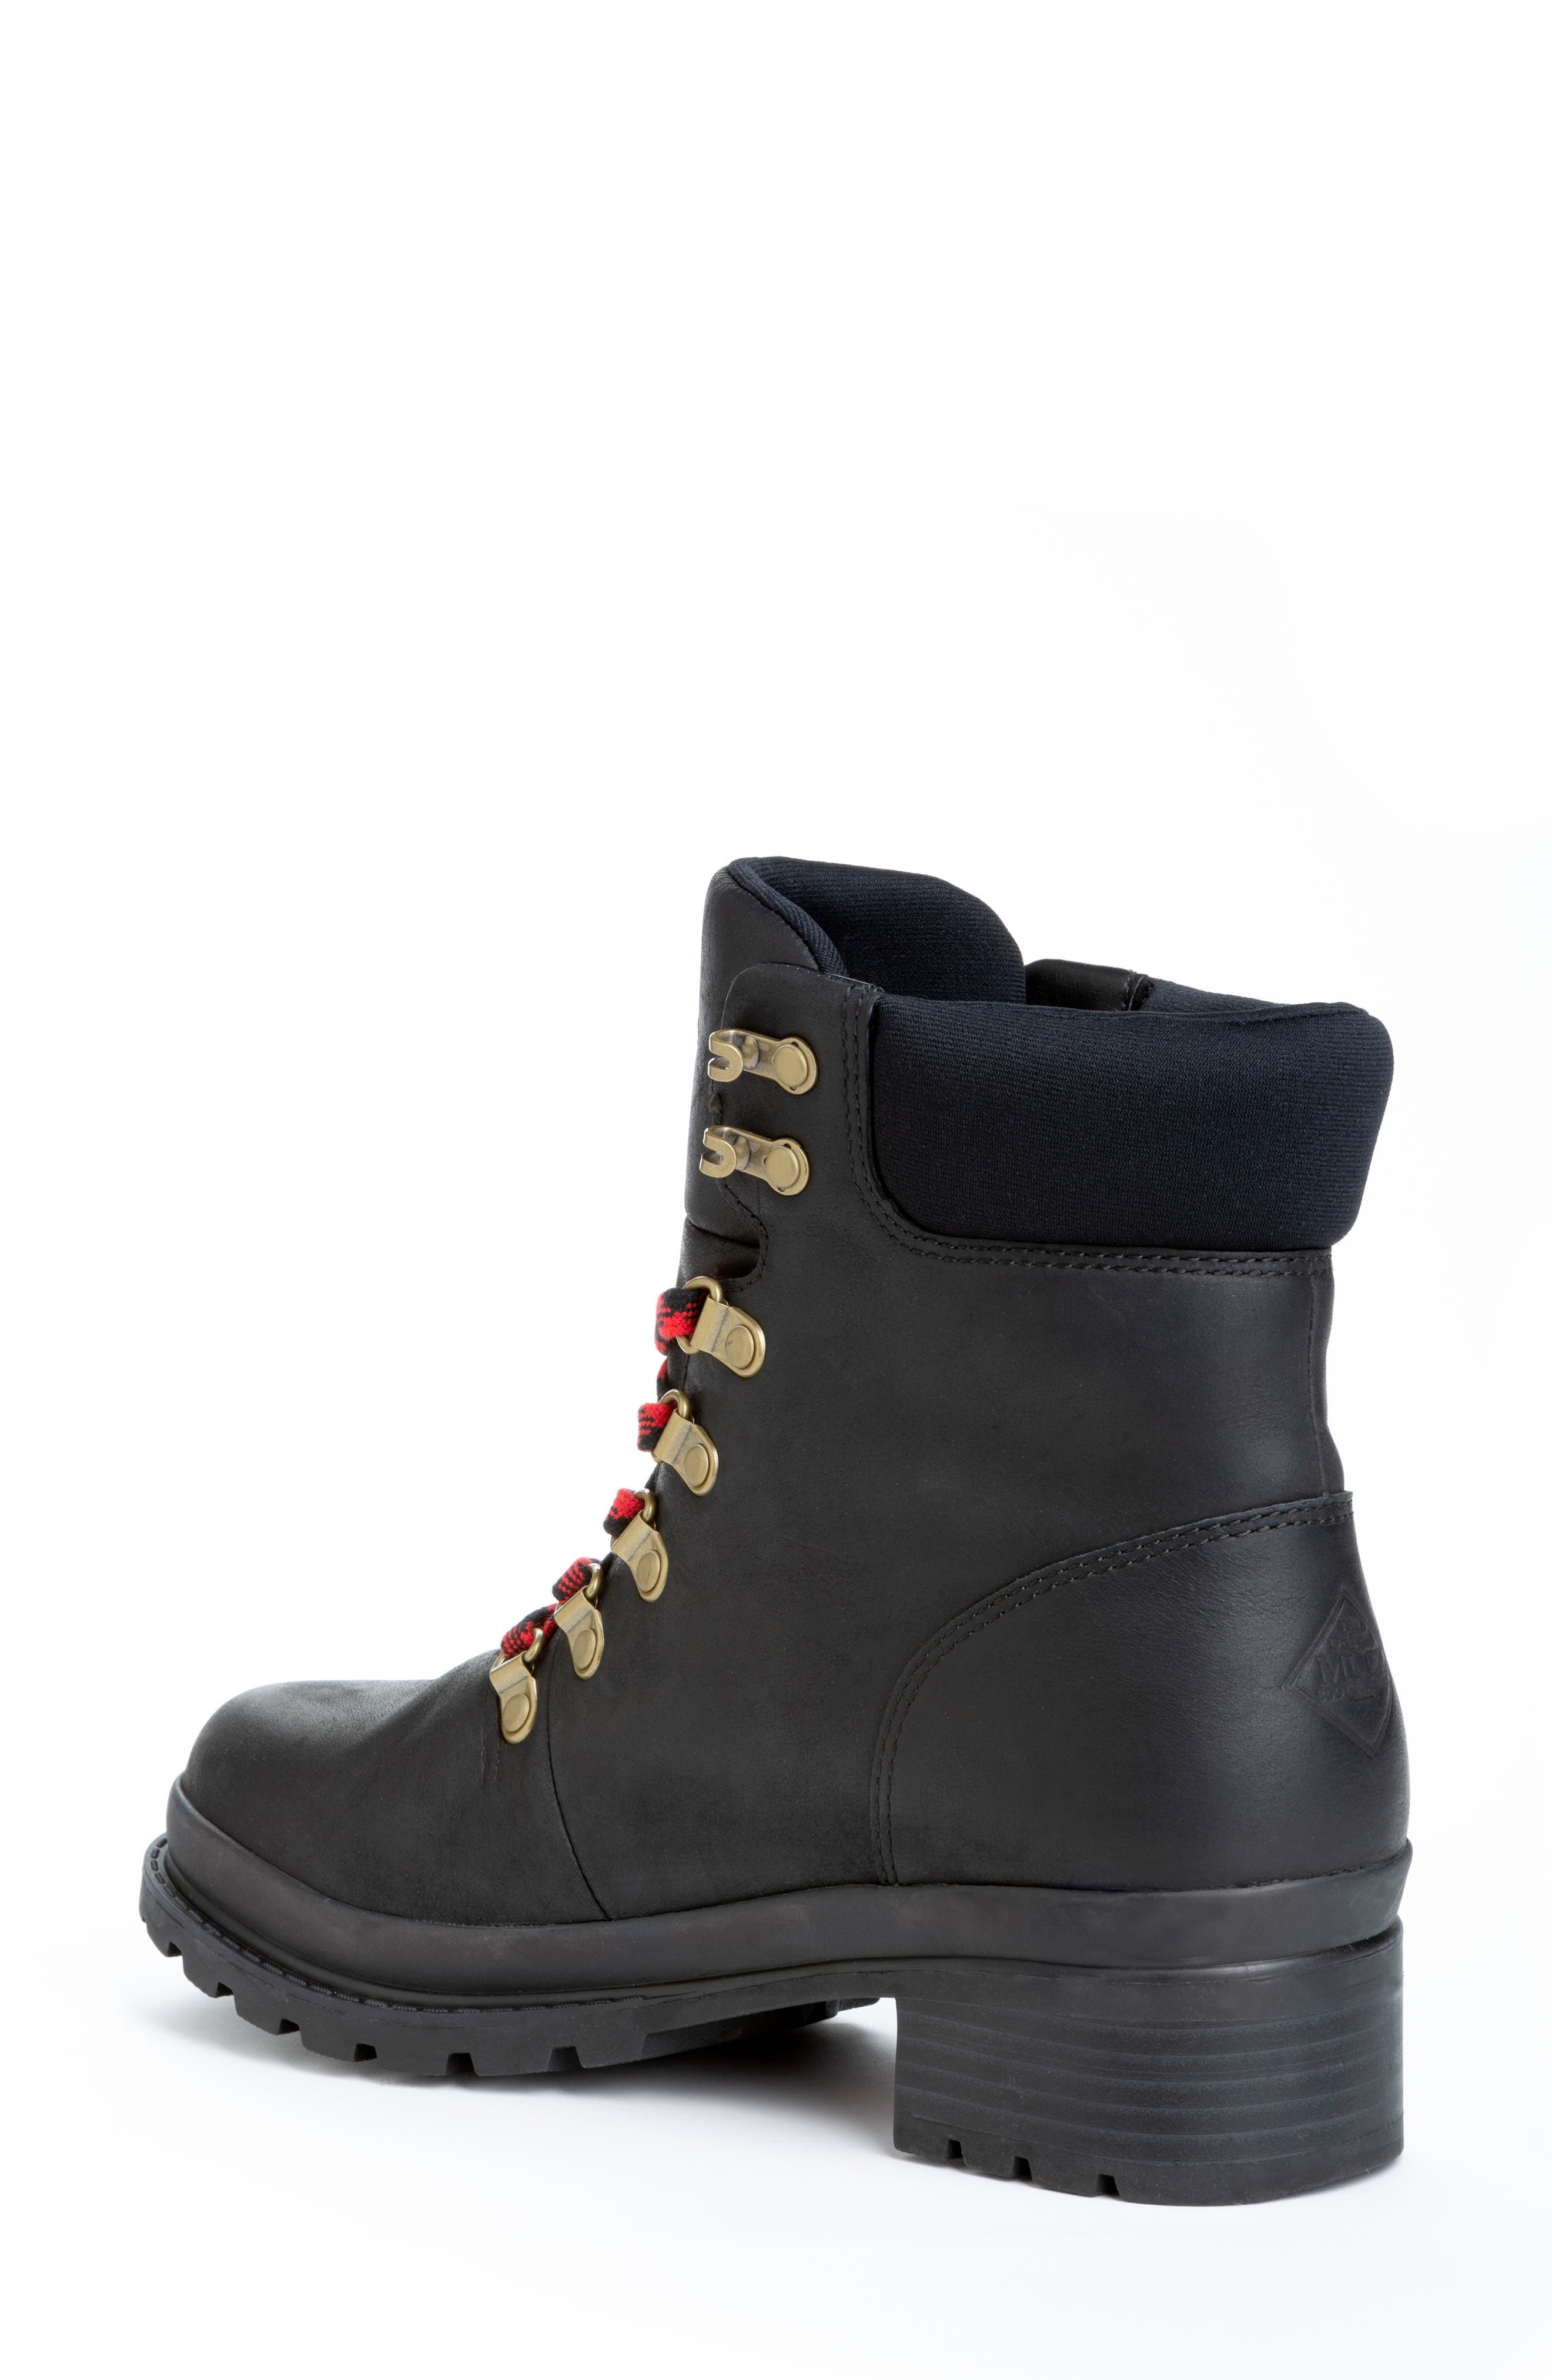 Liberty Alpine Waterproof Hiker Boot,                             Alternate thumbnail 2, color,                             BLACK LEATHER